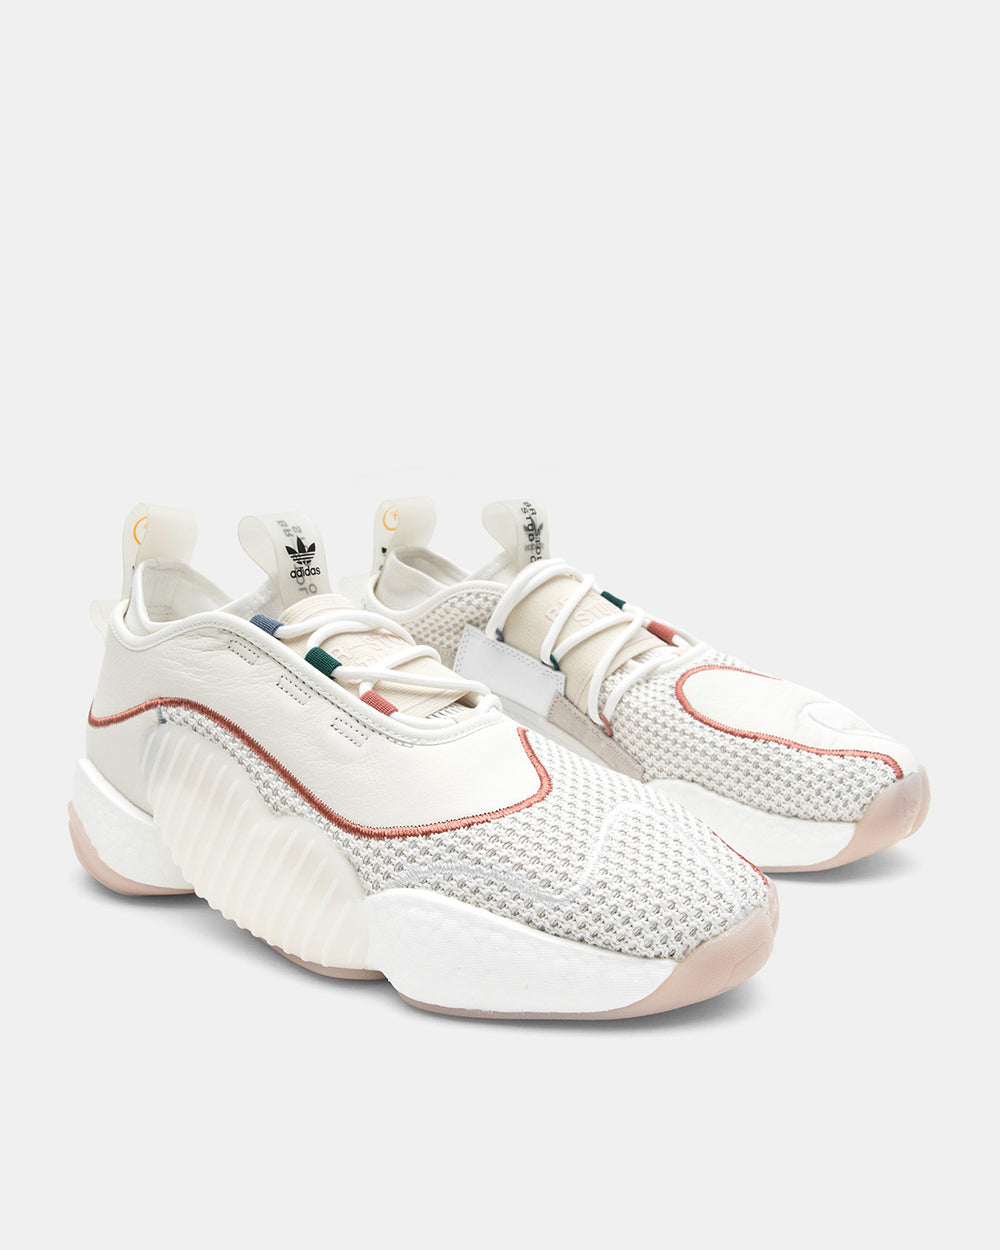 adidas Consortium x Bristol Studios Crazy BYW 2 (Cloud White | Footwear White | Customized)